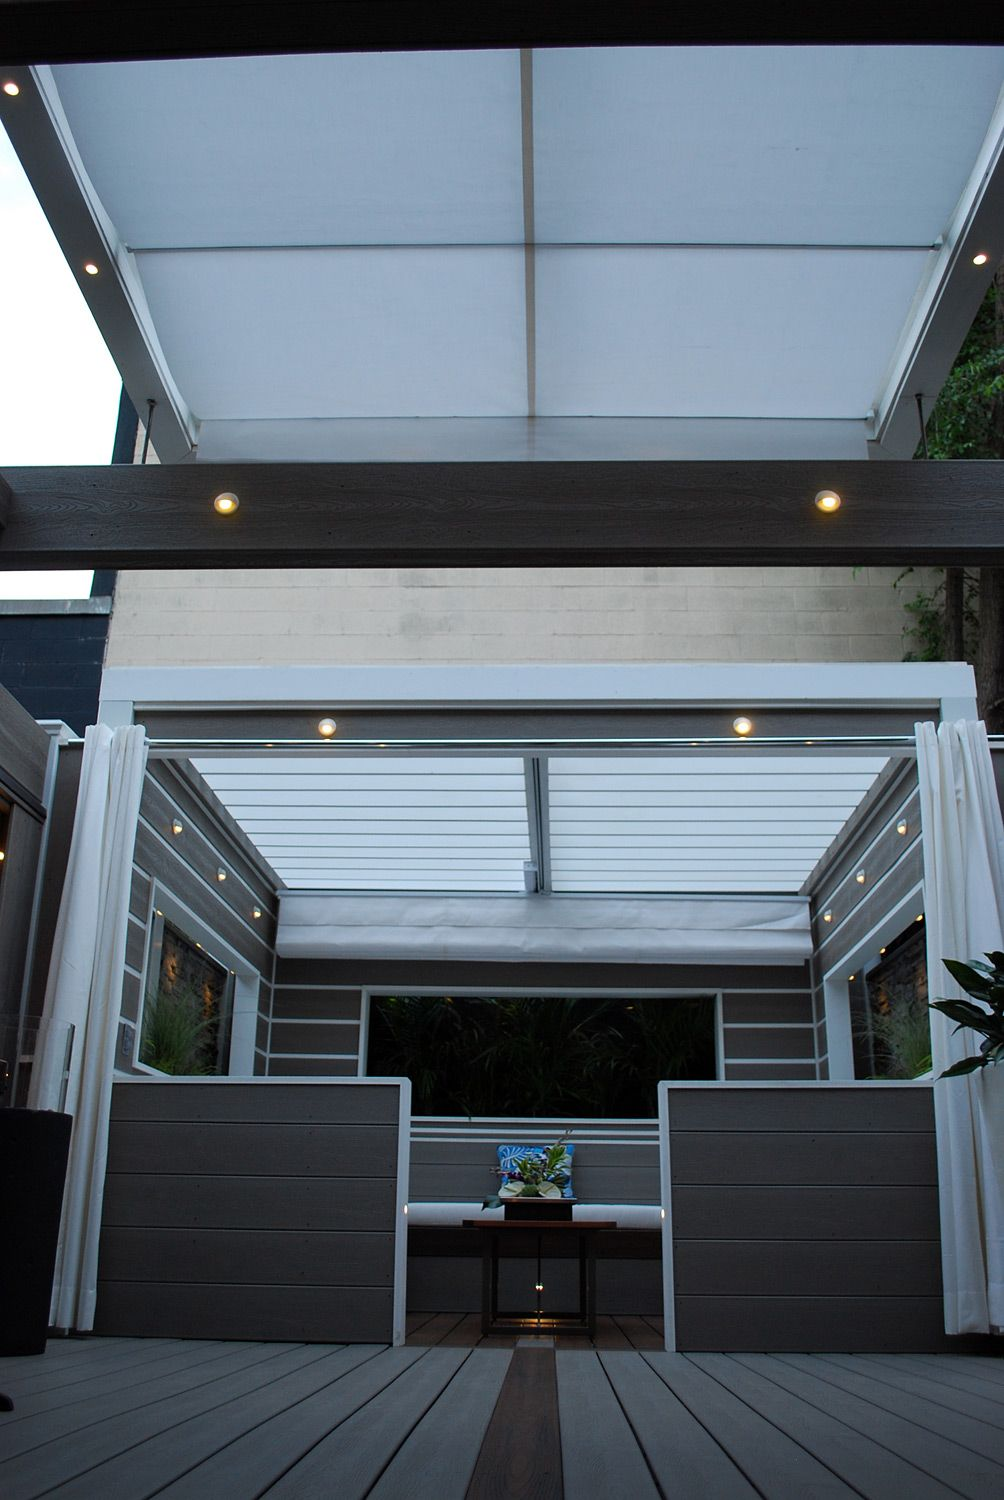 Retractable Awnings Provide Total Privacy From Tall Buildings Overhead While Still Letting In Lots Of